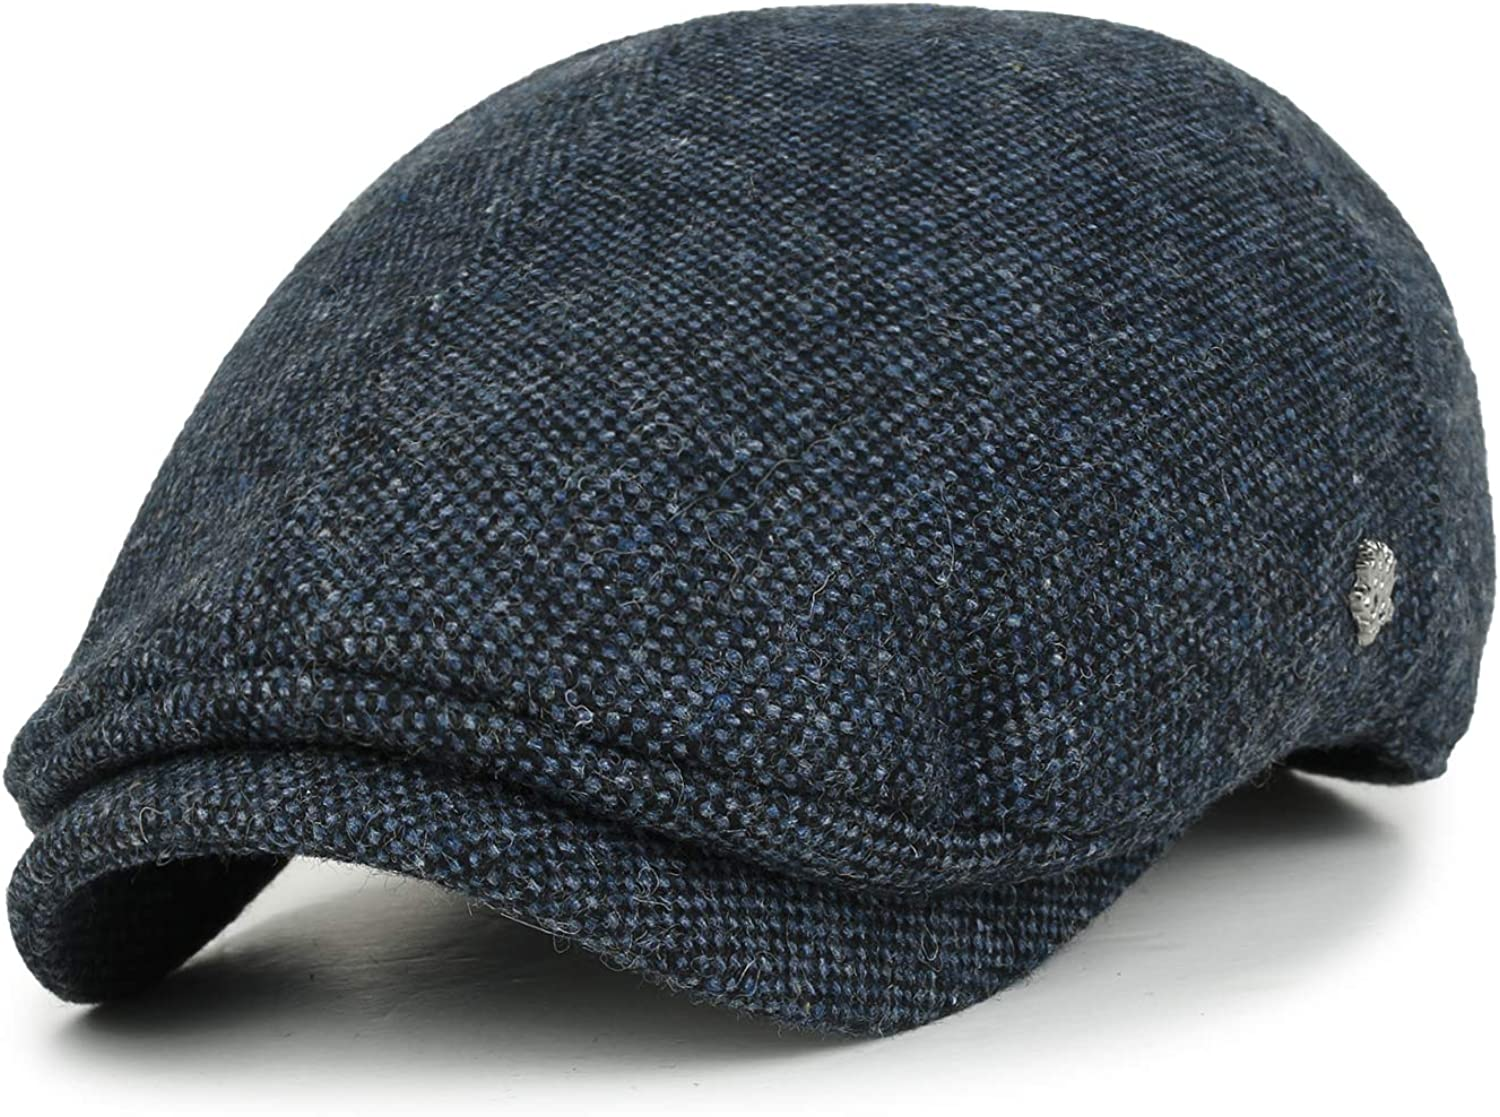 Eohak Mens Knitted Wool Duckbill Hat Warm Newsboy Scally Flat Cap Driving Hats